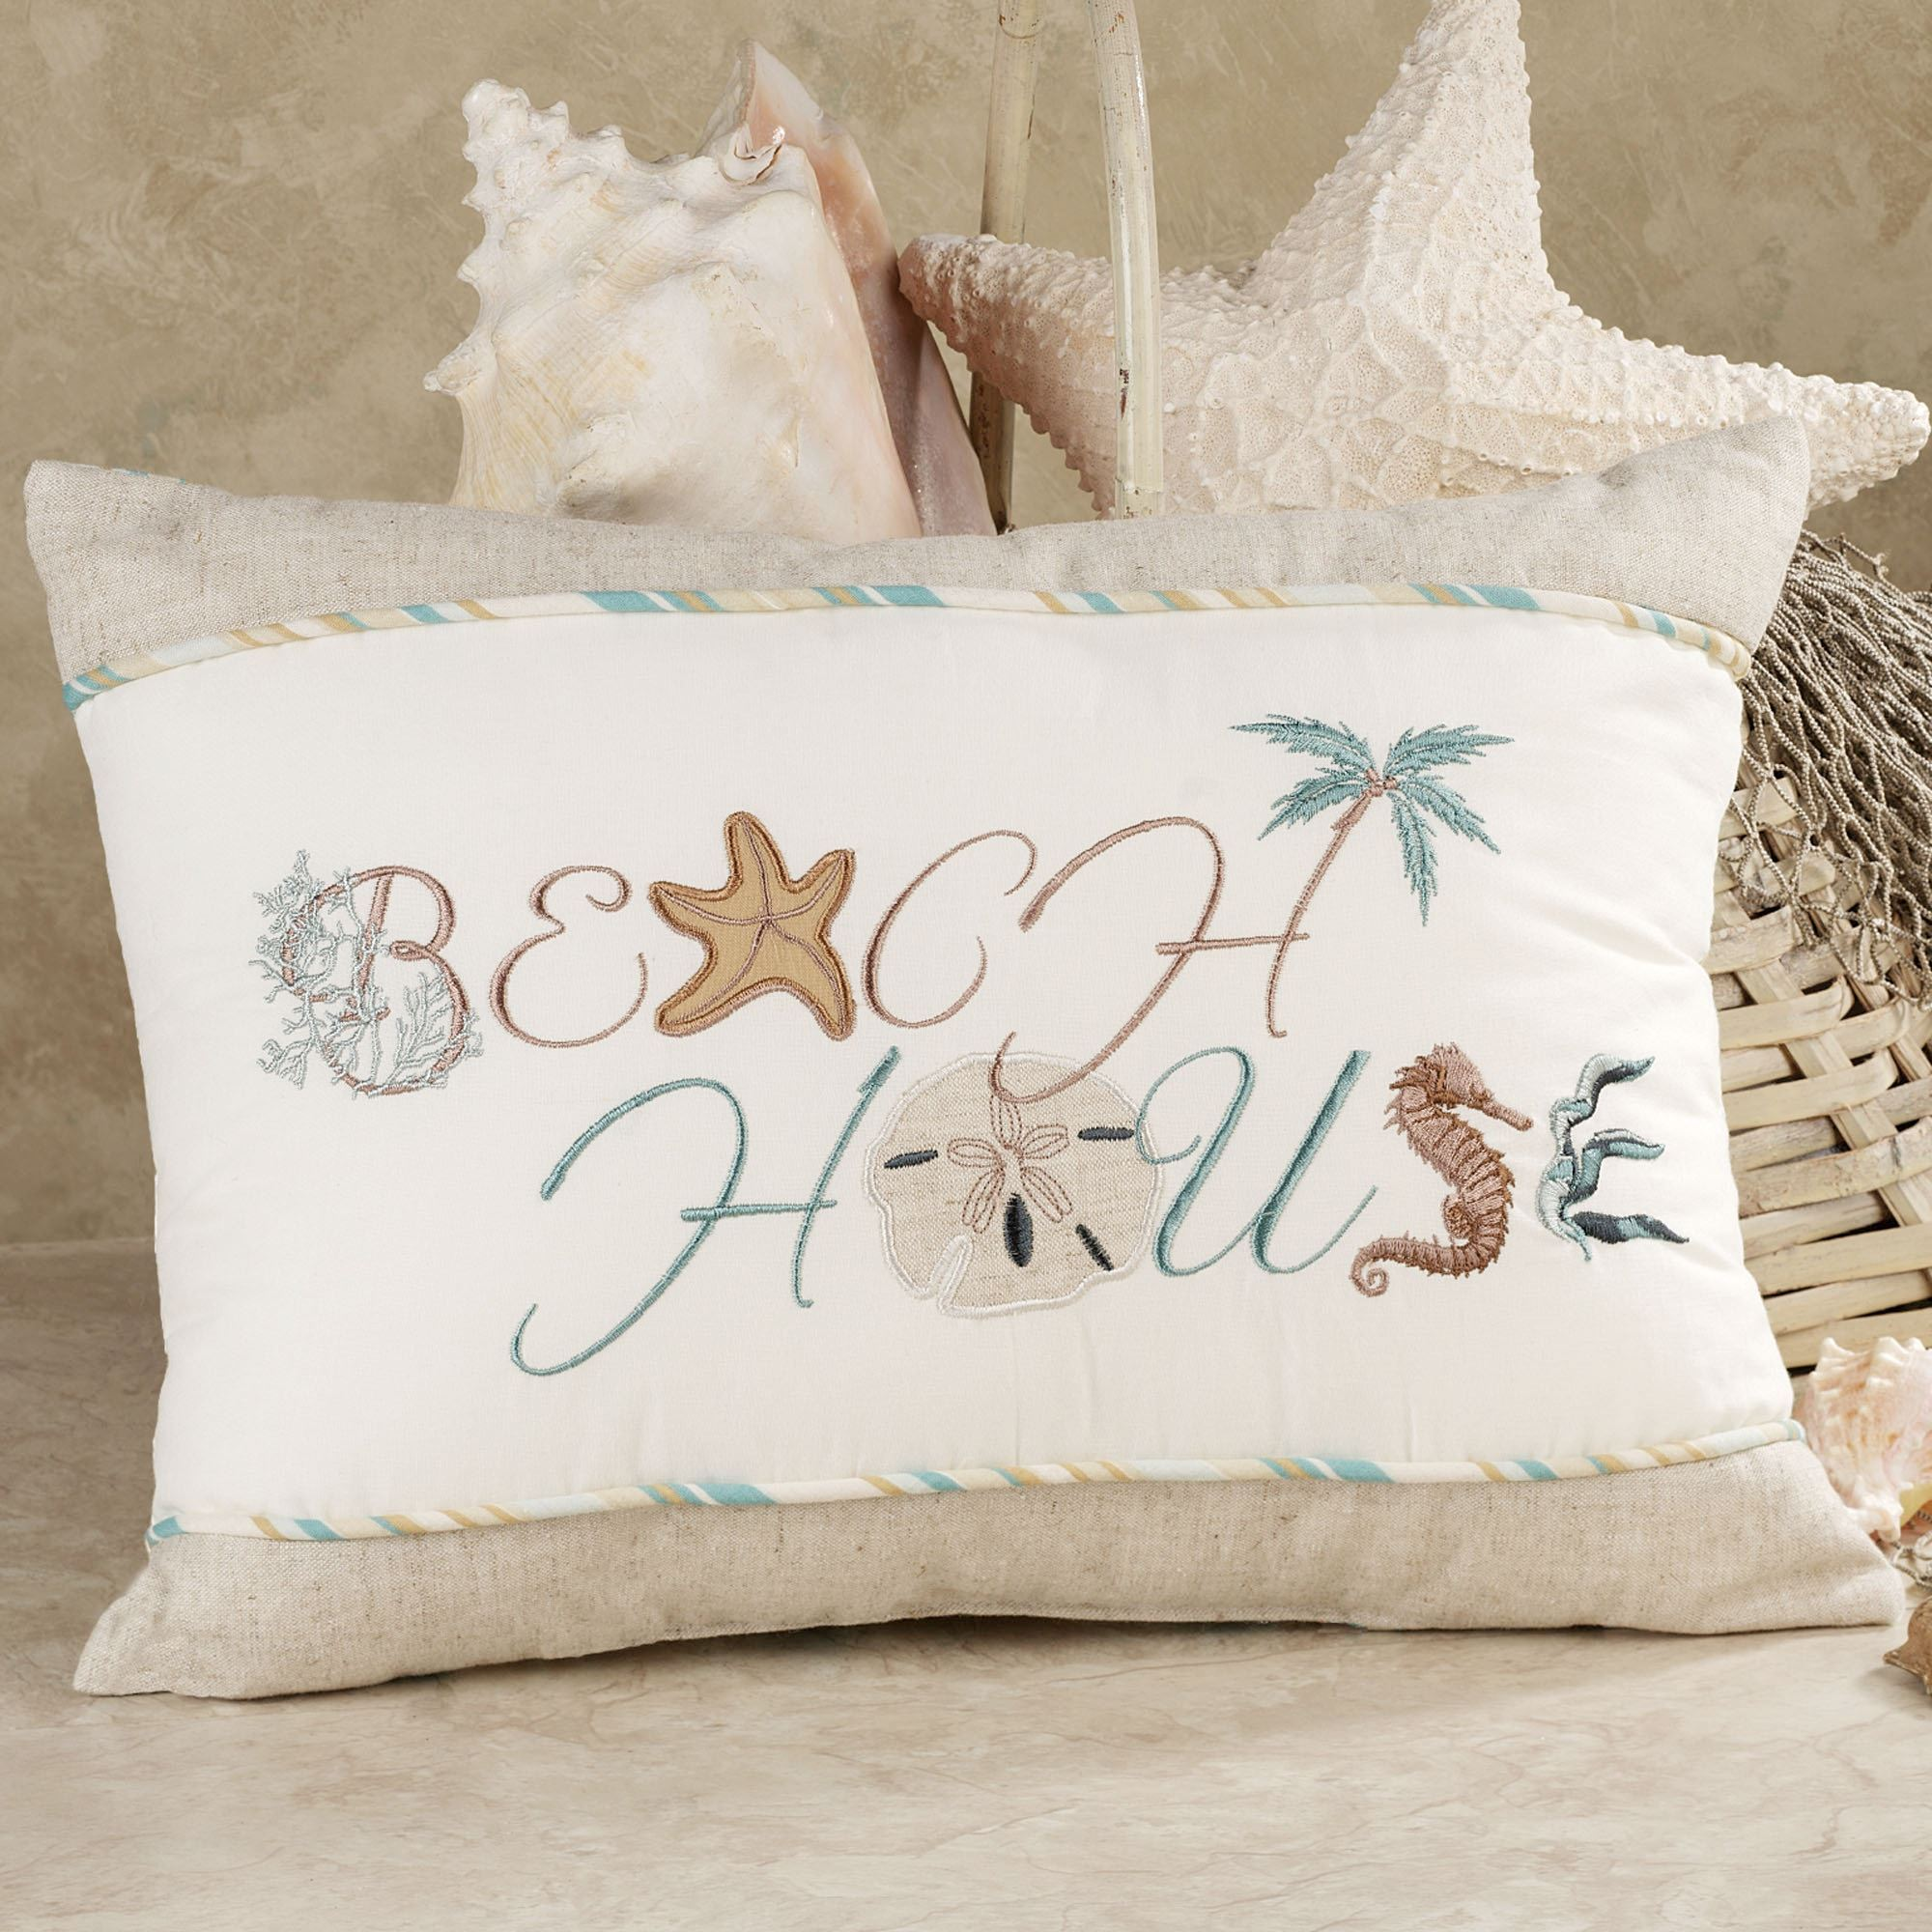 res singapore beach palm sg seafolly pillow hi pillows moss palmbeachm